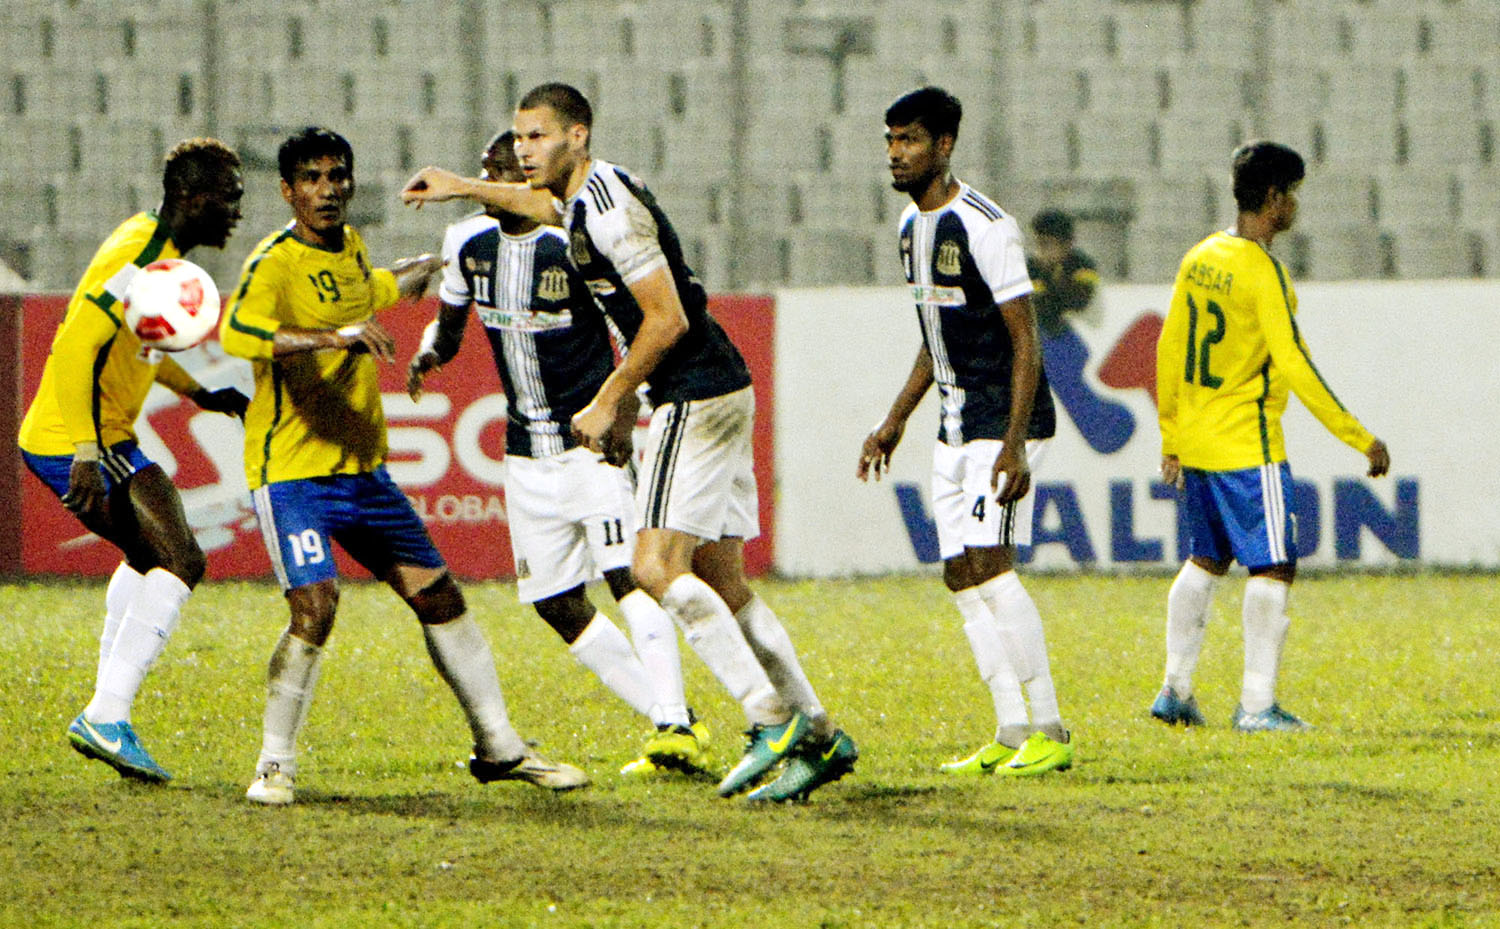 sheikh jamal forced to share points in bpl soccer